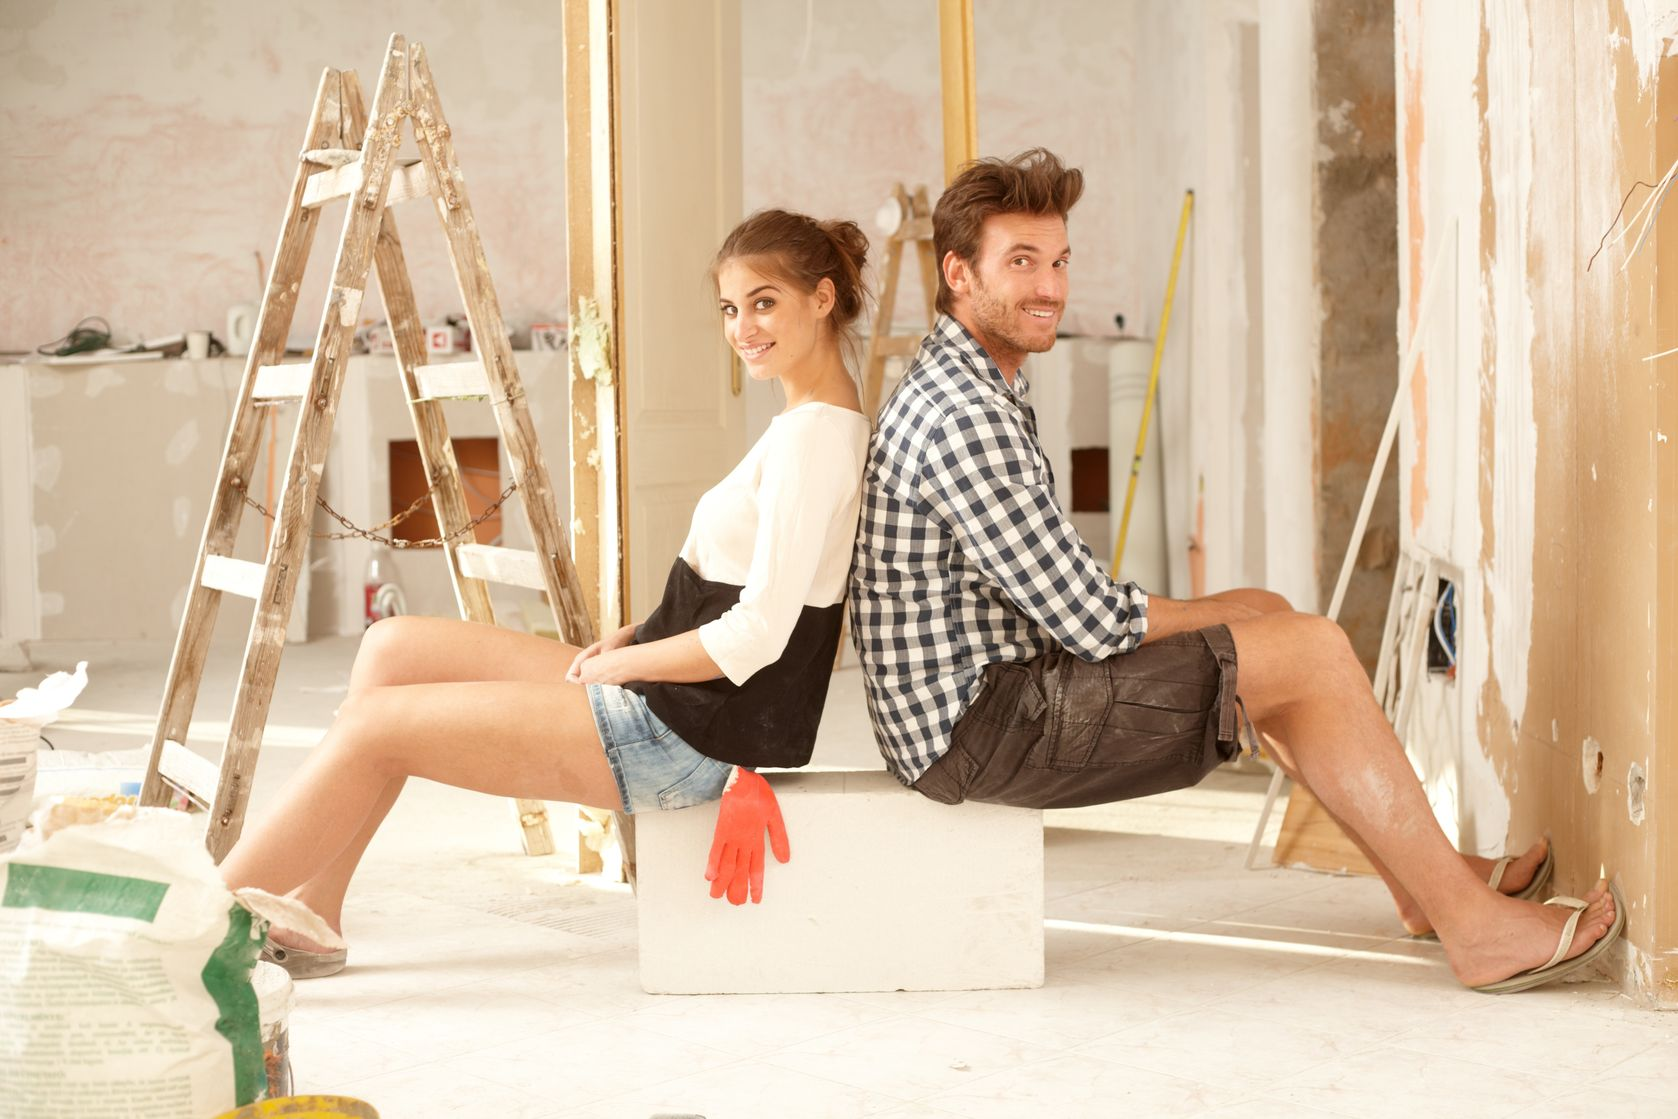 ICYMI Home Renovation Show Casting Underway In Chester County